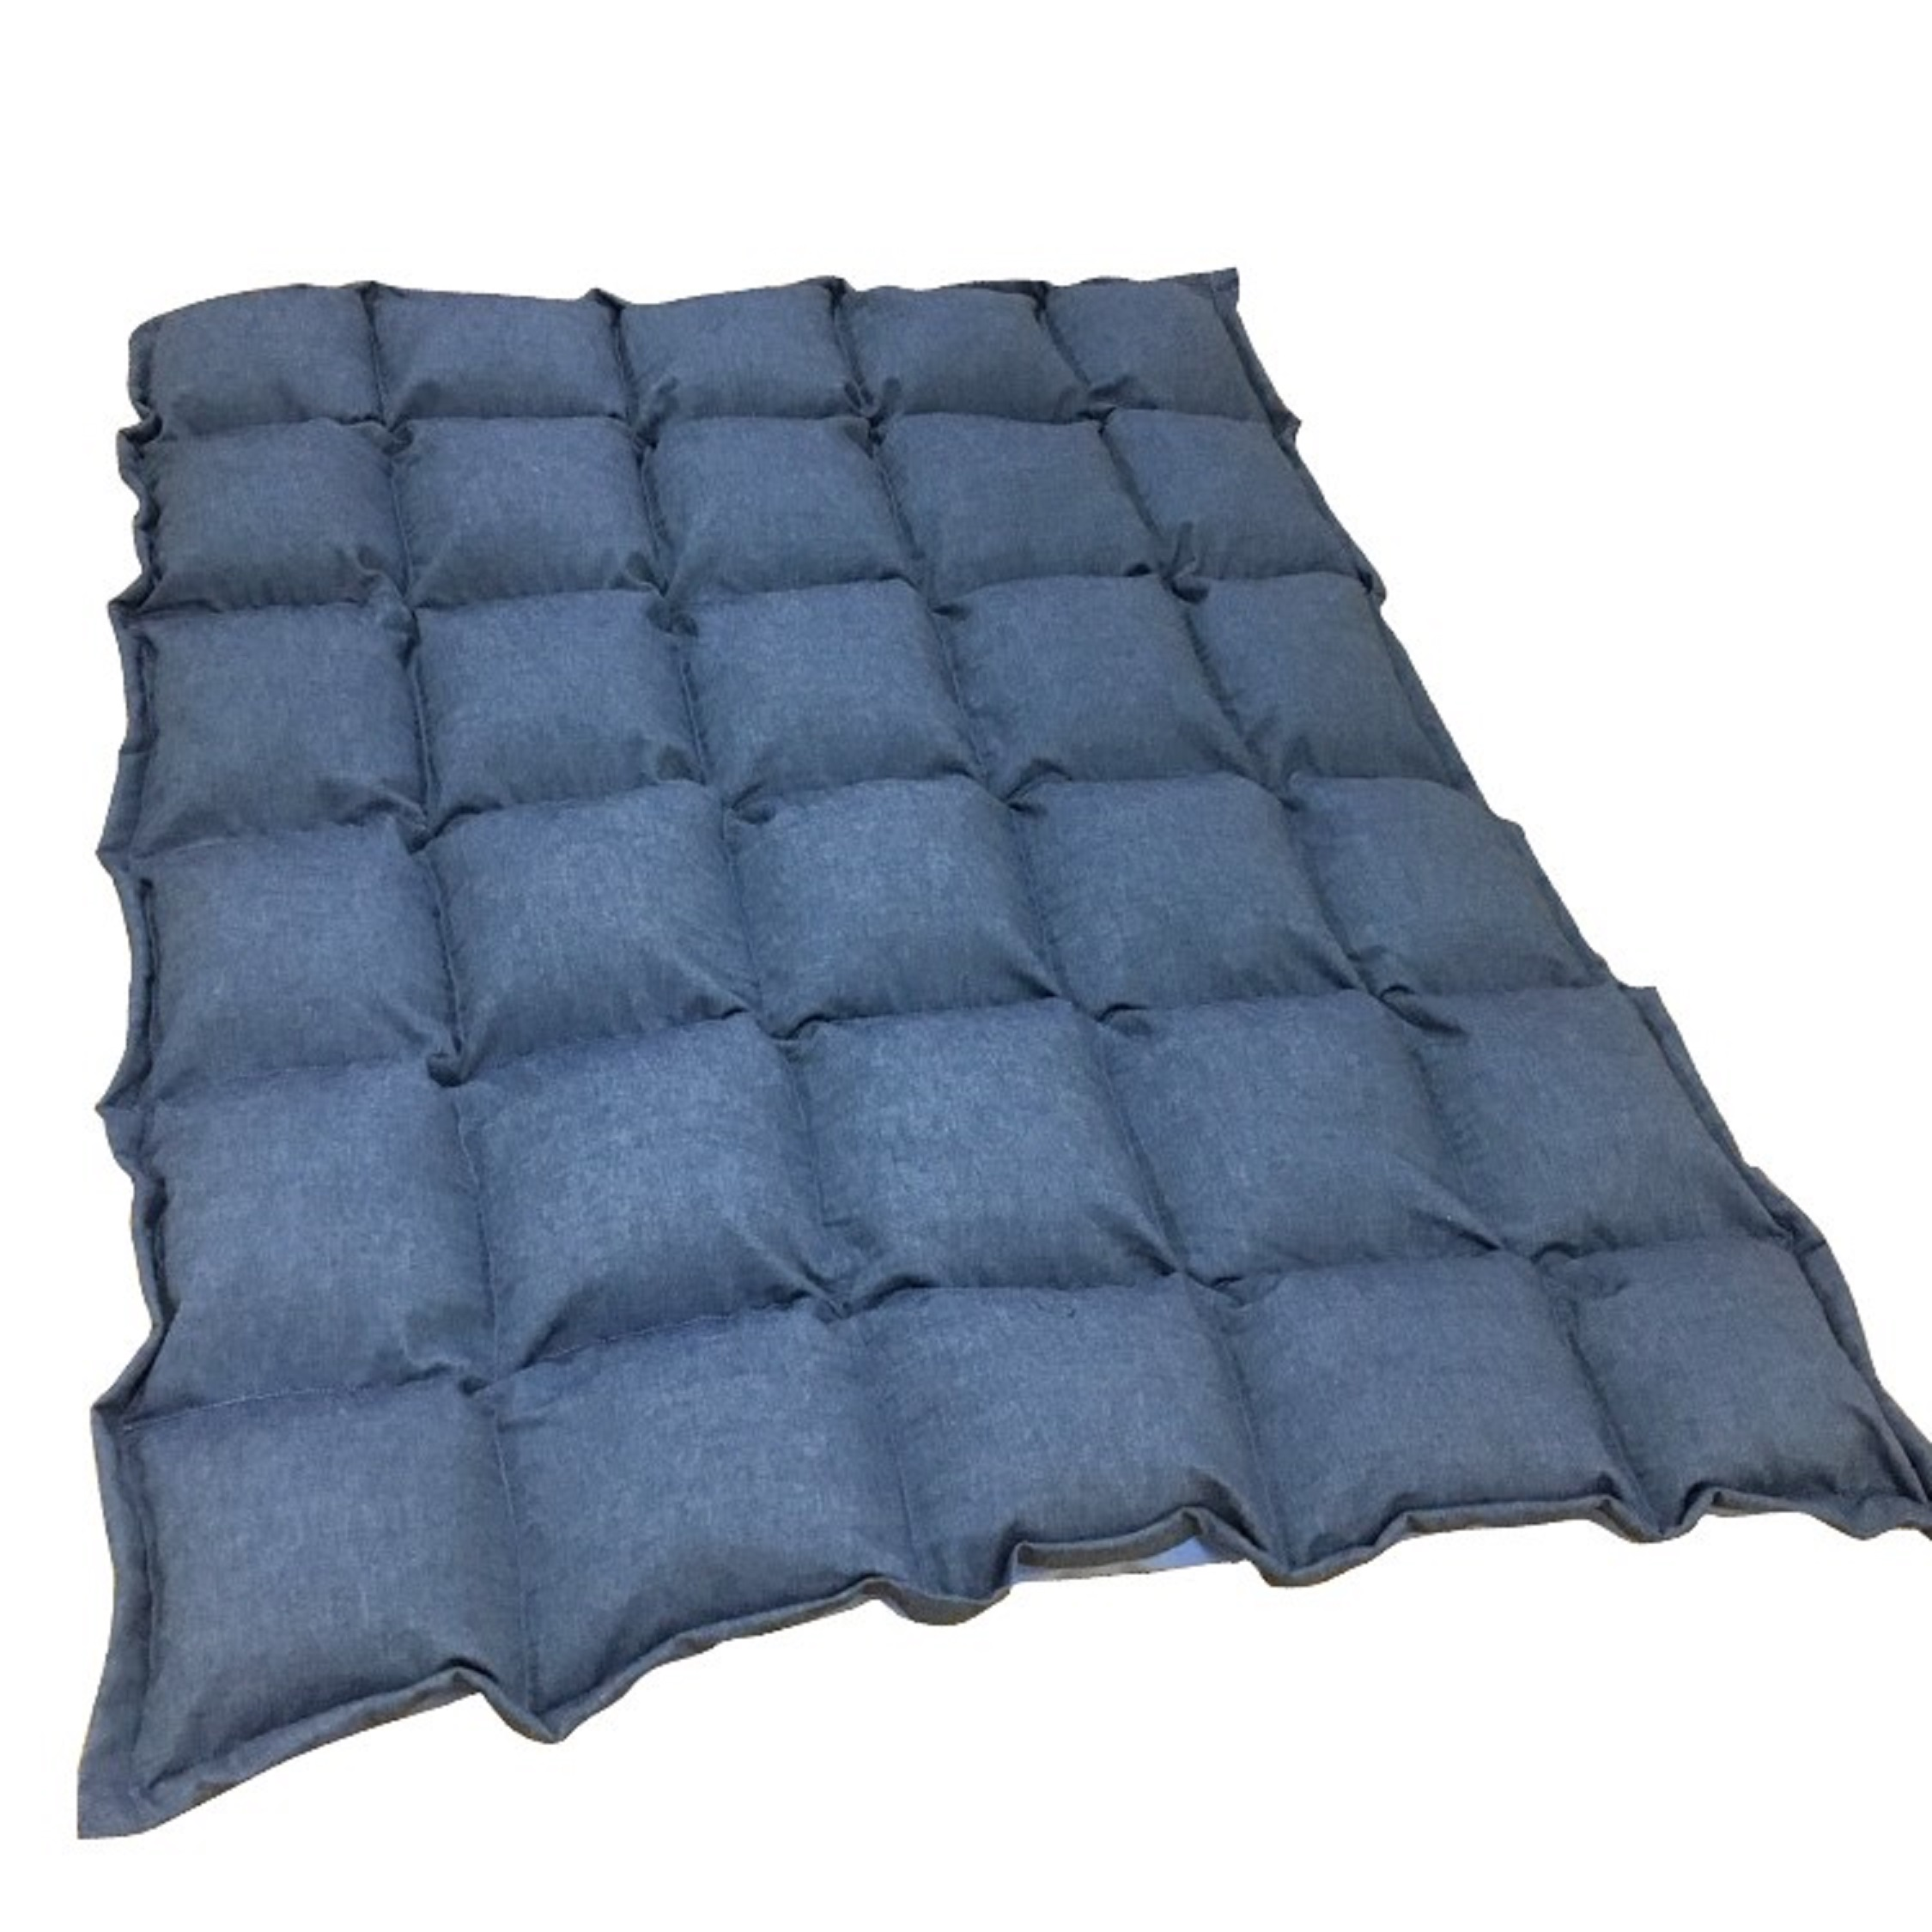 Premium Weighted Blanket for Calm and Soothe Deep Pressure